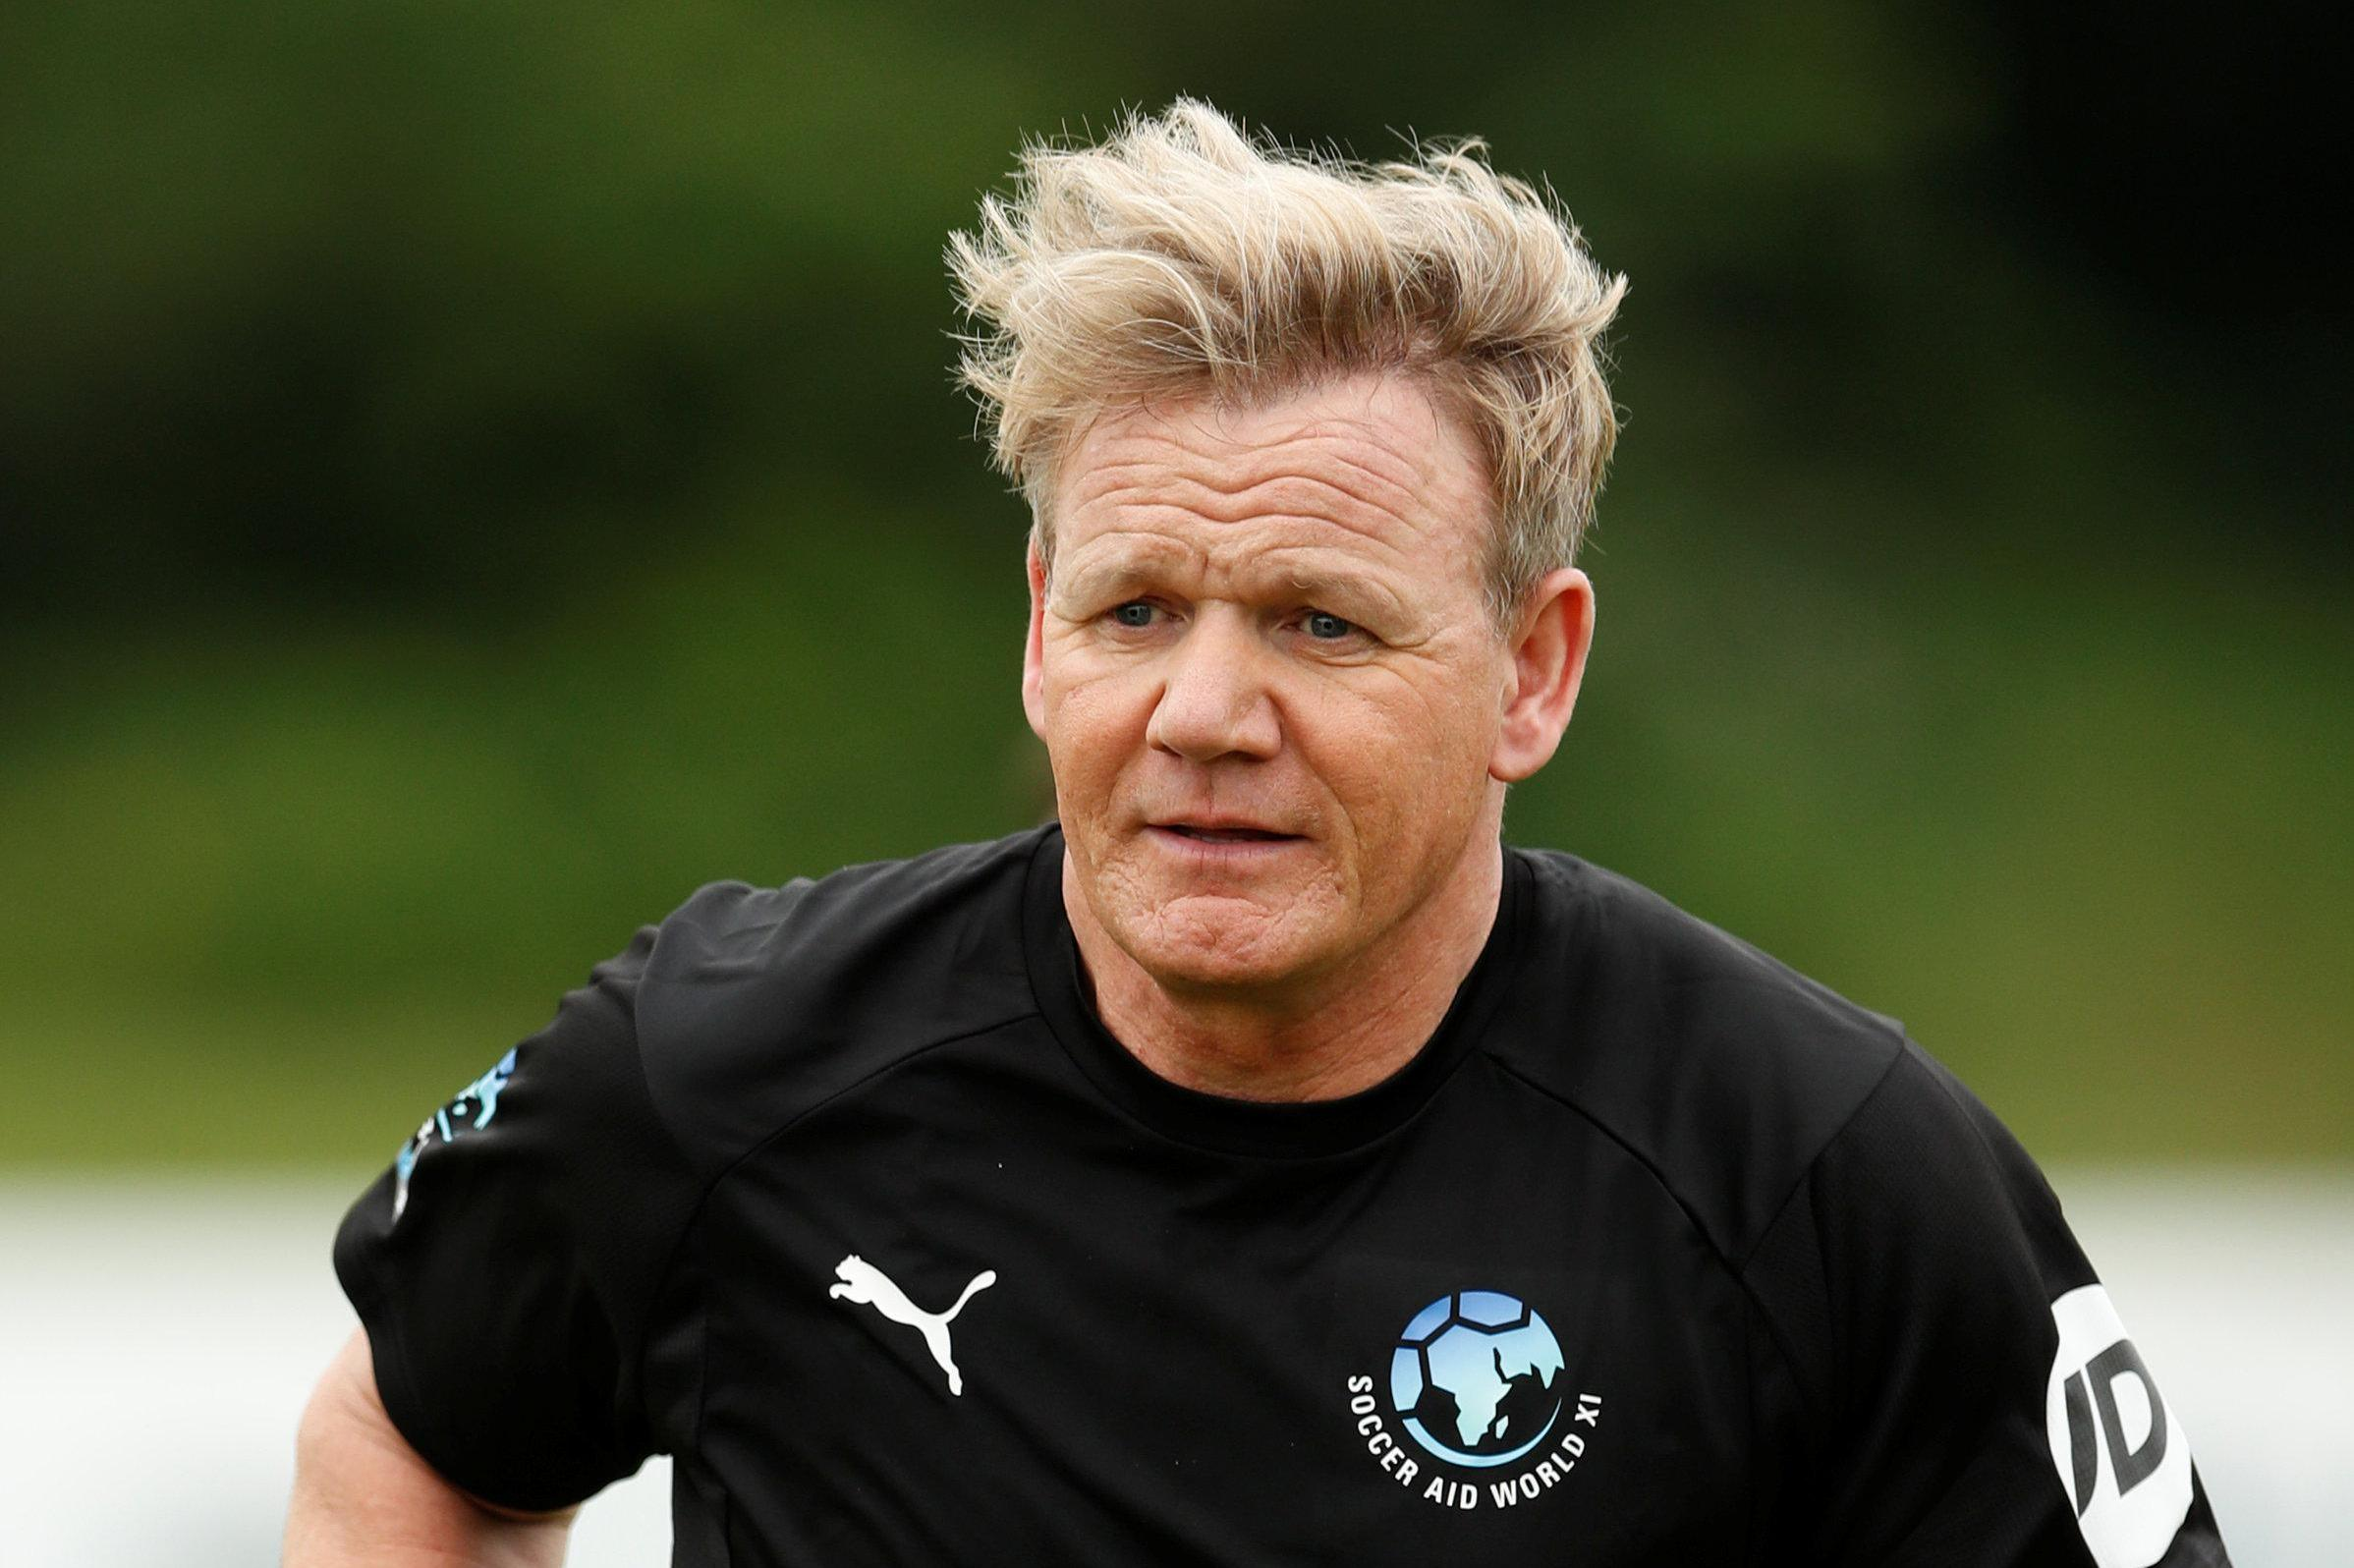 Did Gordon Ramsay ever play for Rangers, and why did Soccer Aid star and top chef's football career end?